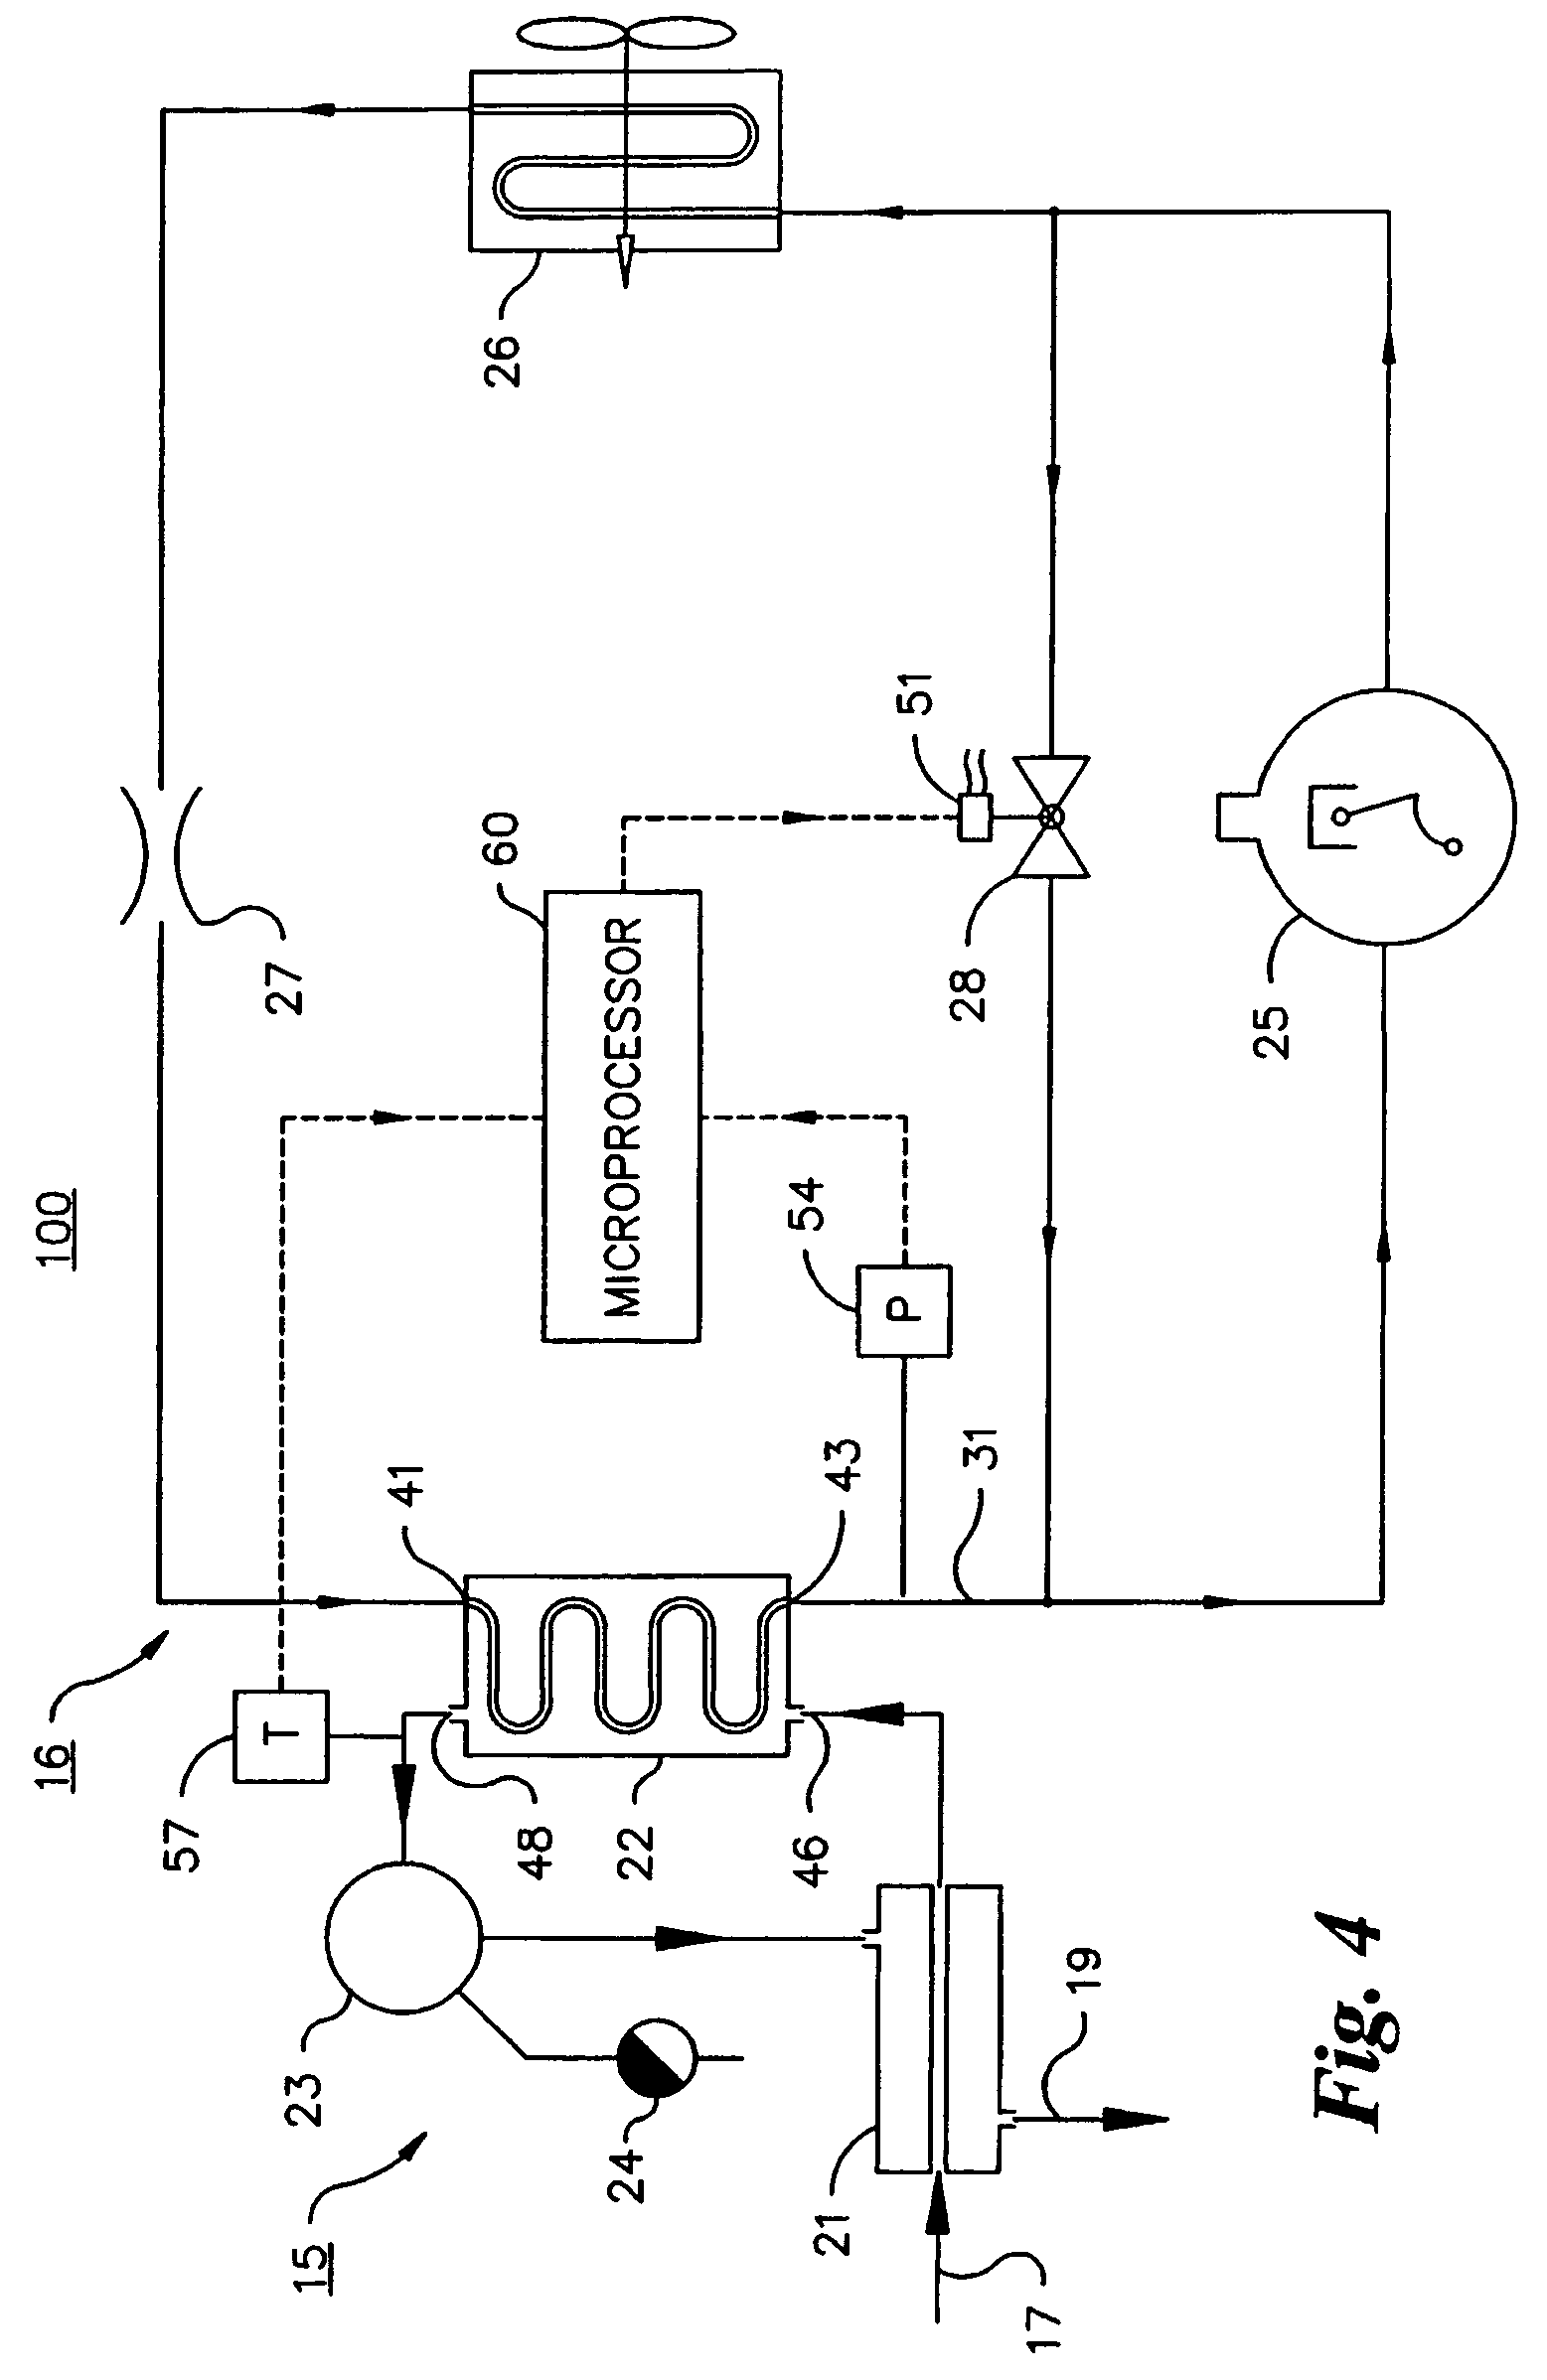 US7111470 as well US7370484 in addition Heat exchanger besides Refrigeration Equipment And Processessystem Cleaning Treatments moreover US6281573. on heat exchanger approach temperature